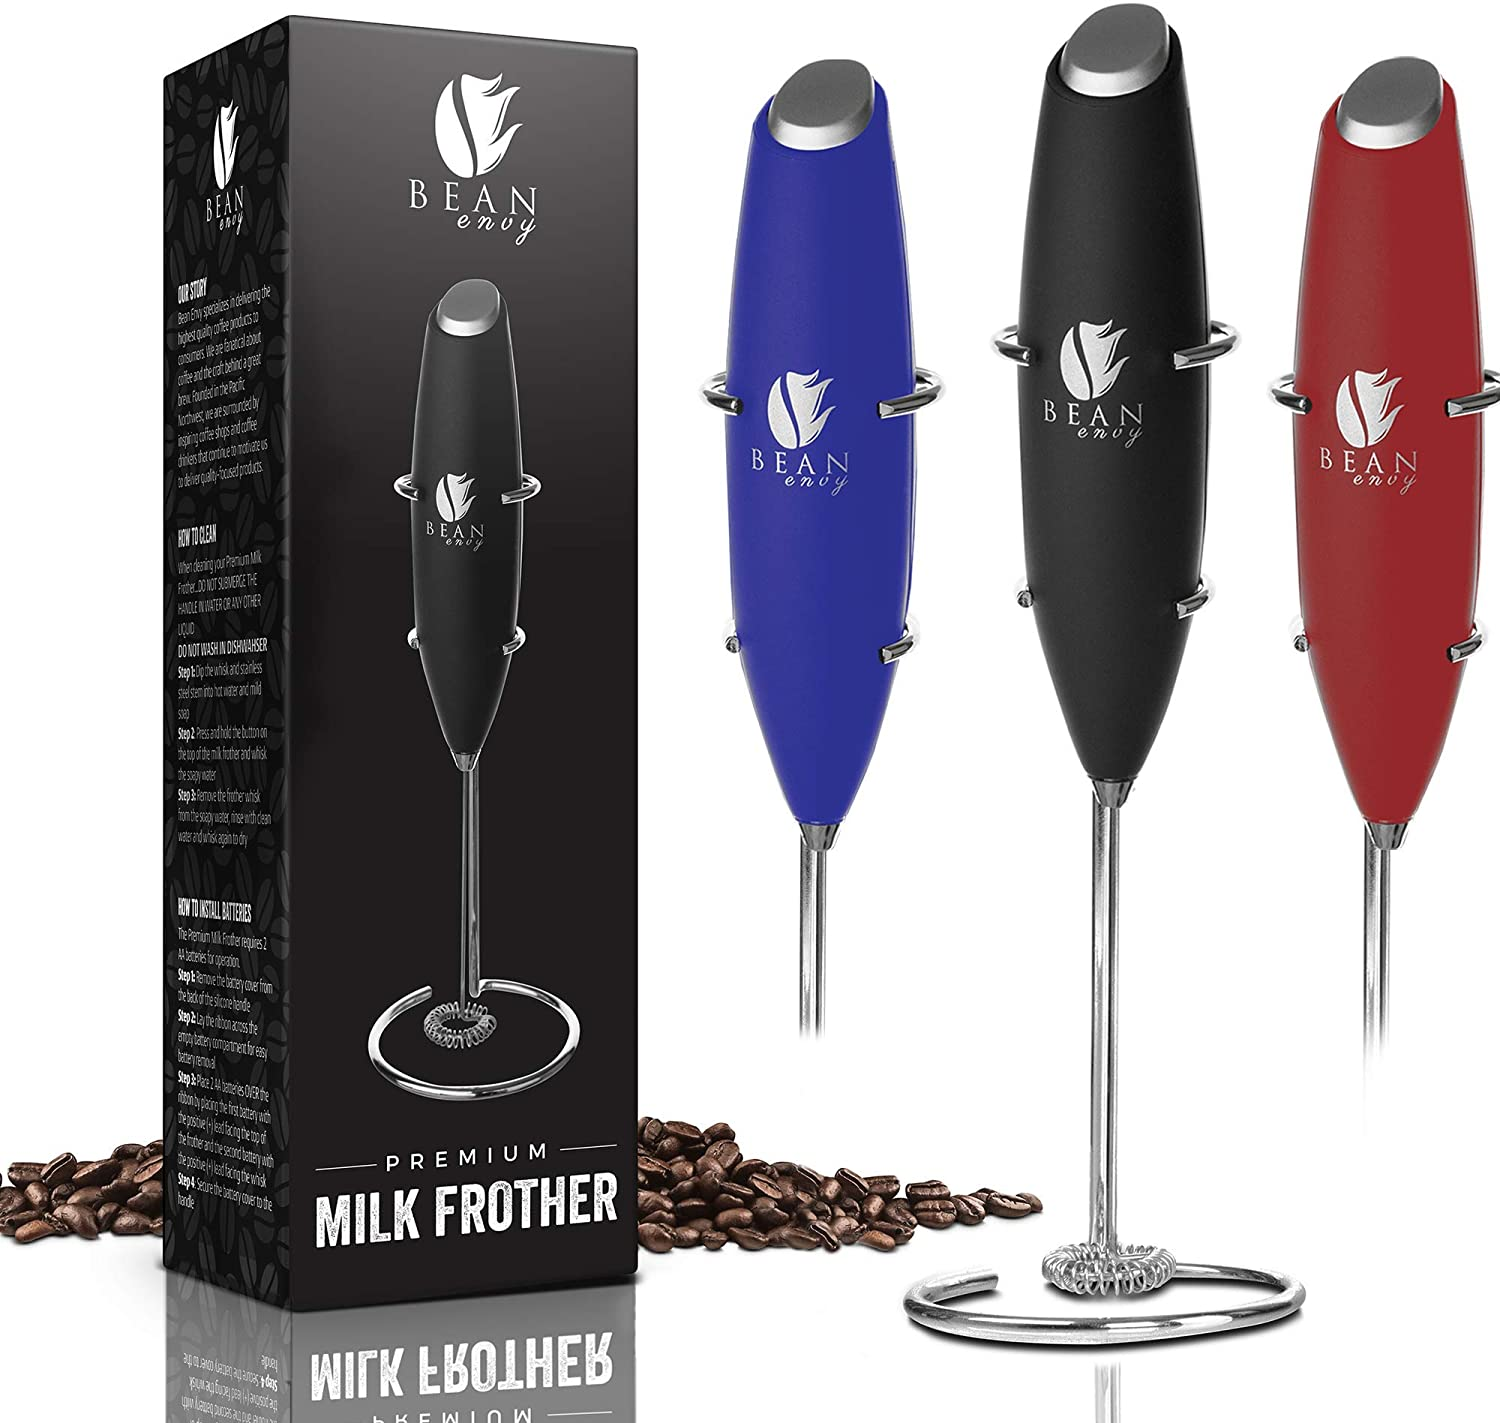 Bean Envy Electric Milk Frother Image